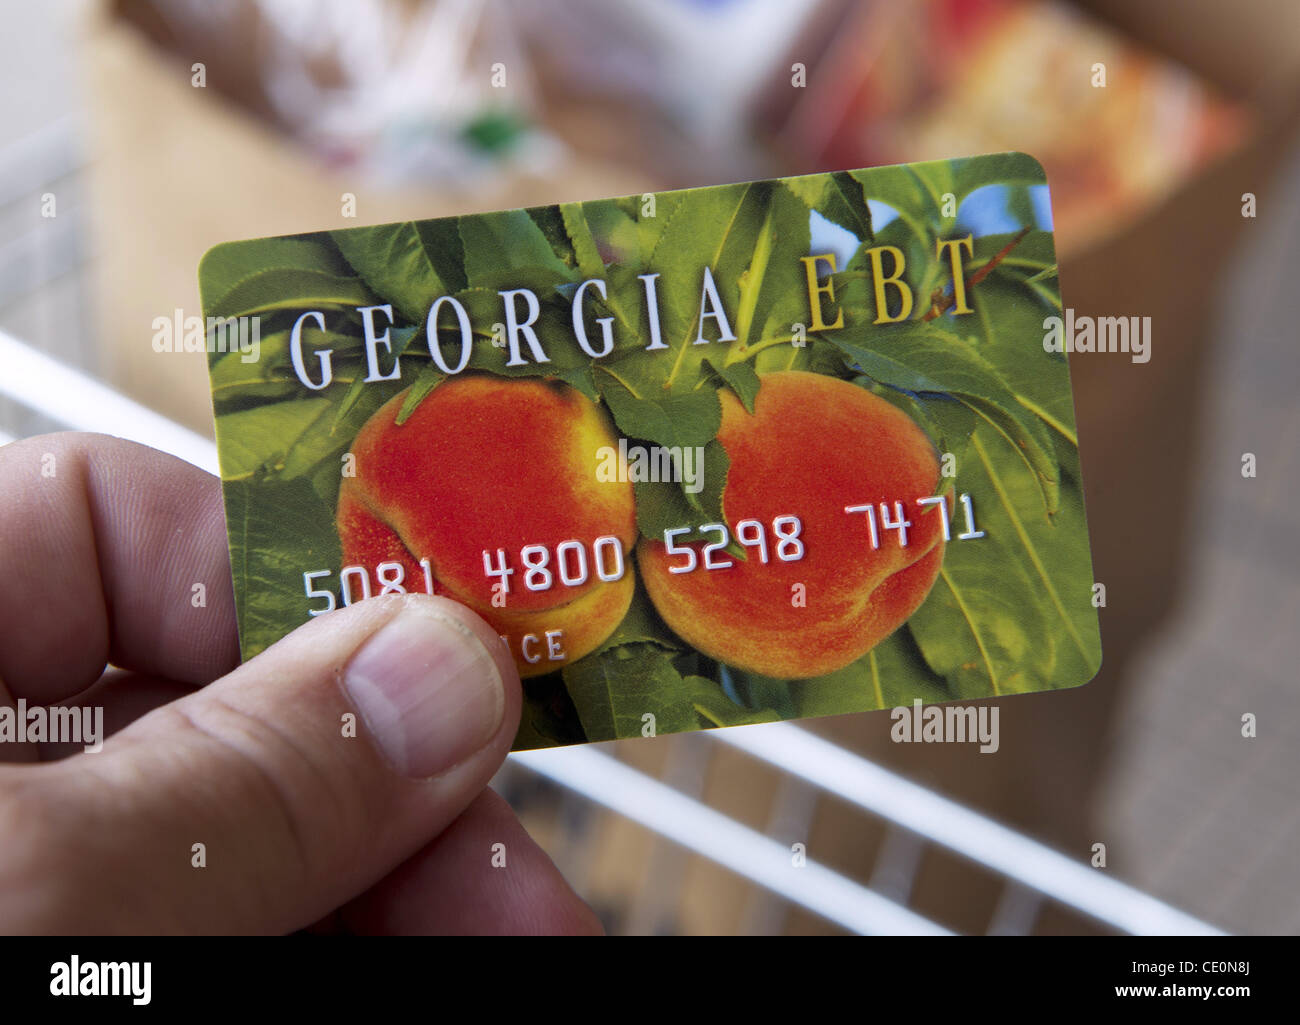 Atlanta Georgia Food Stamp Application